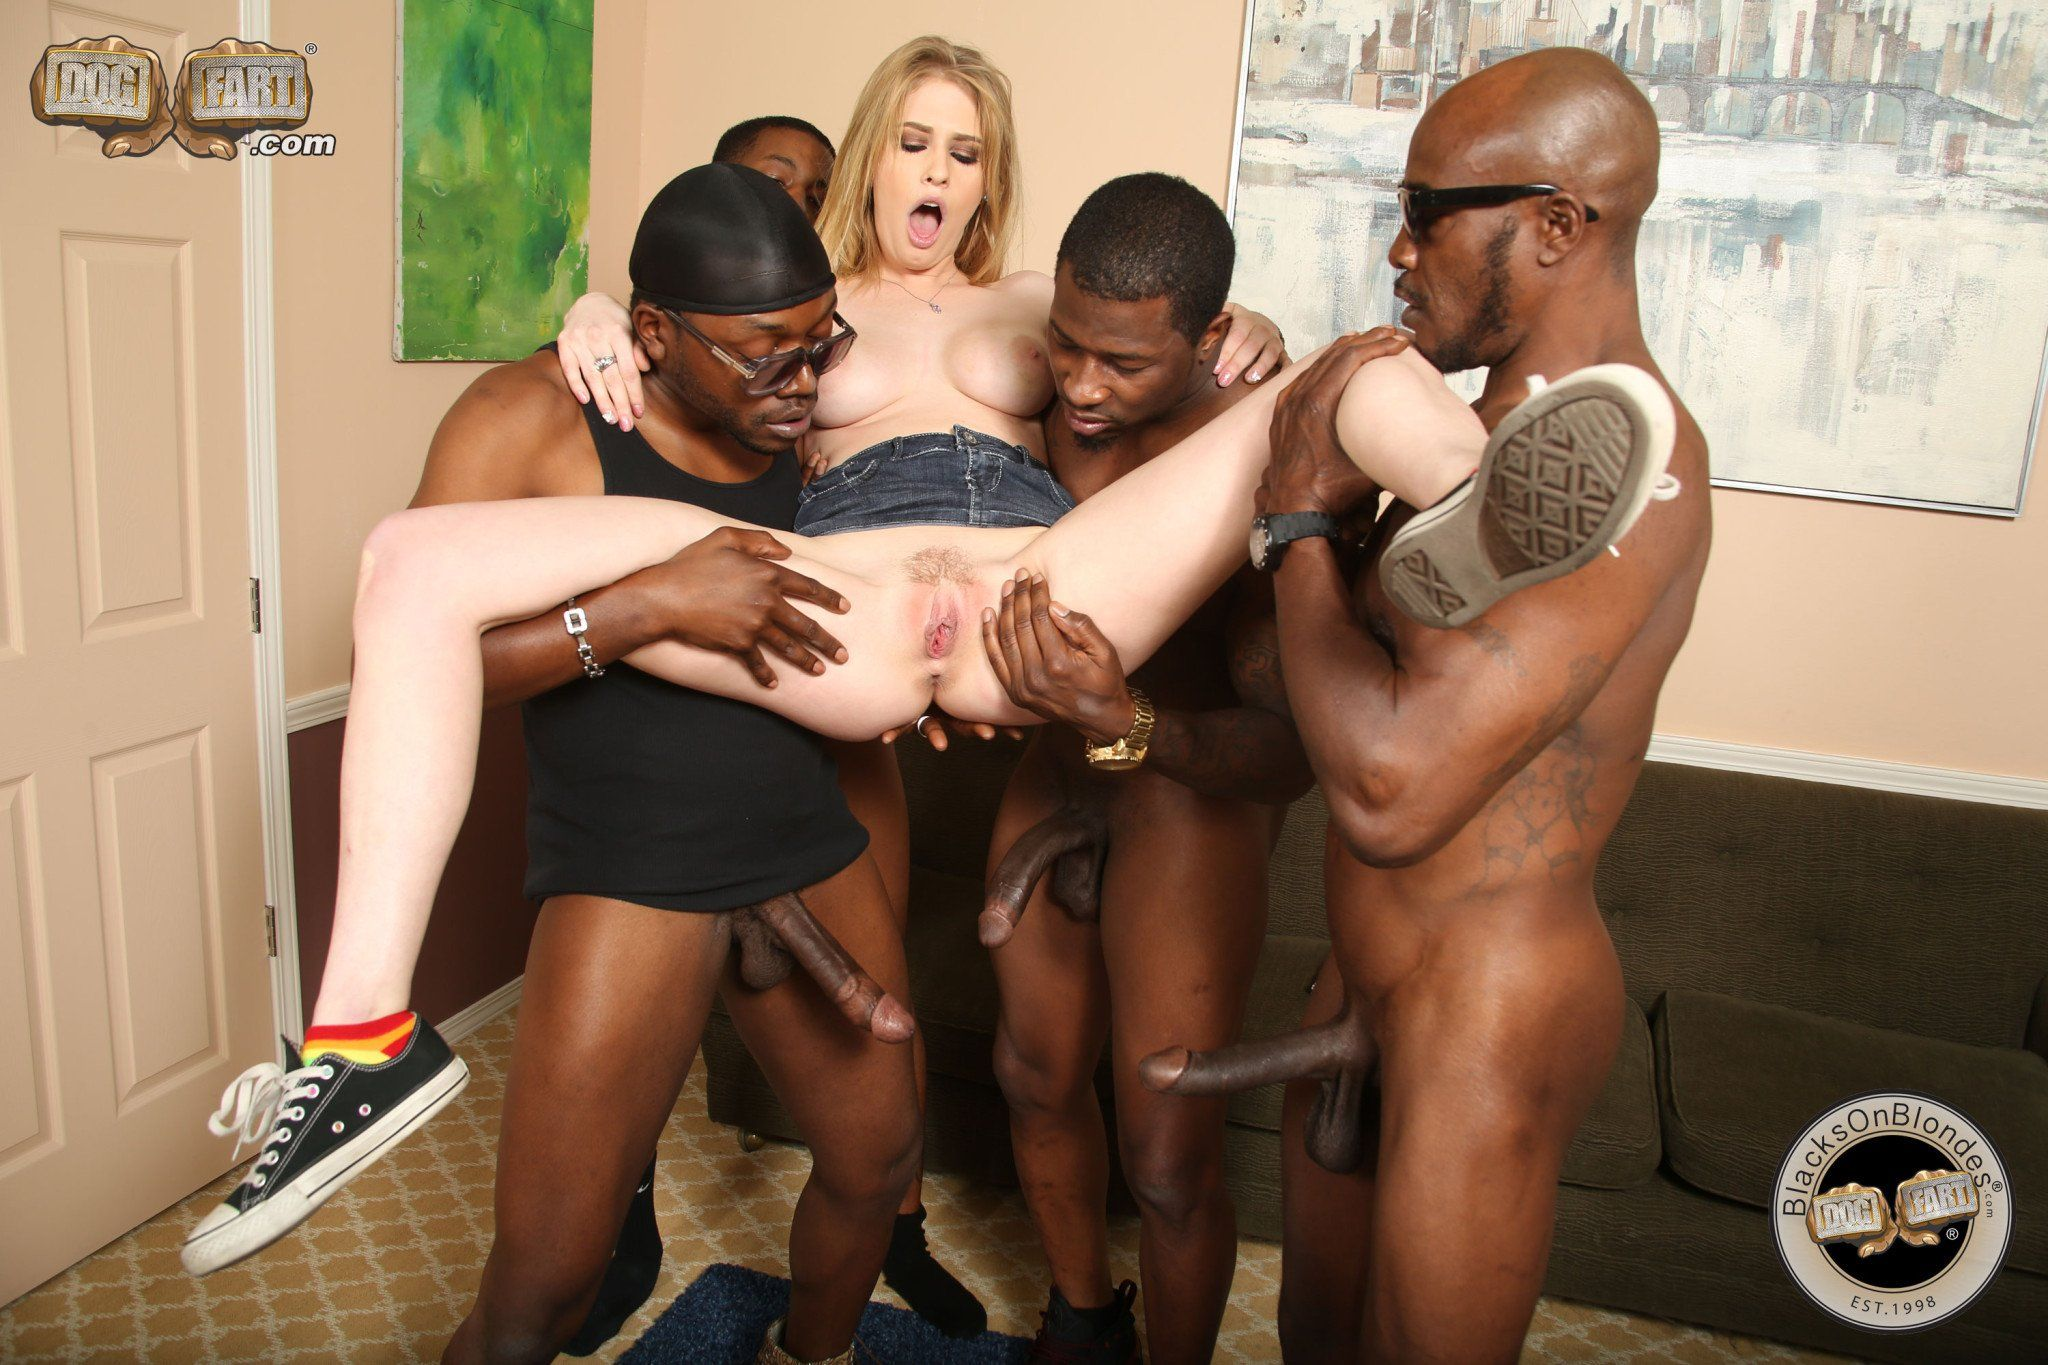 Allie James Nude interracial gangbang with allie james - photos and other